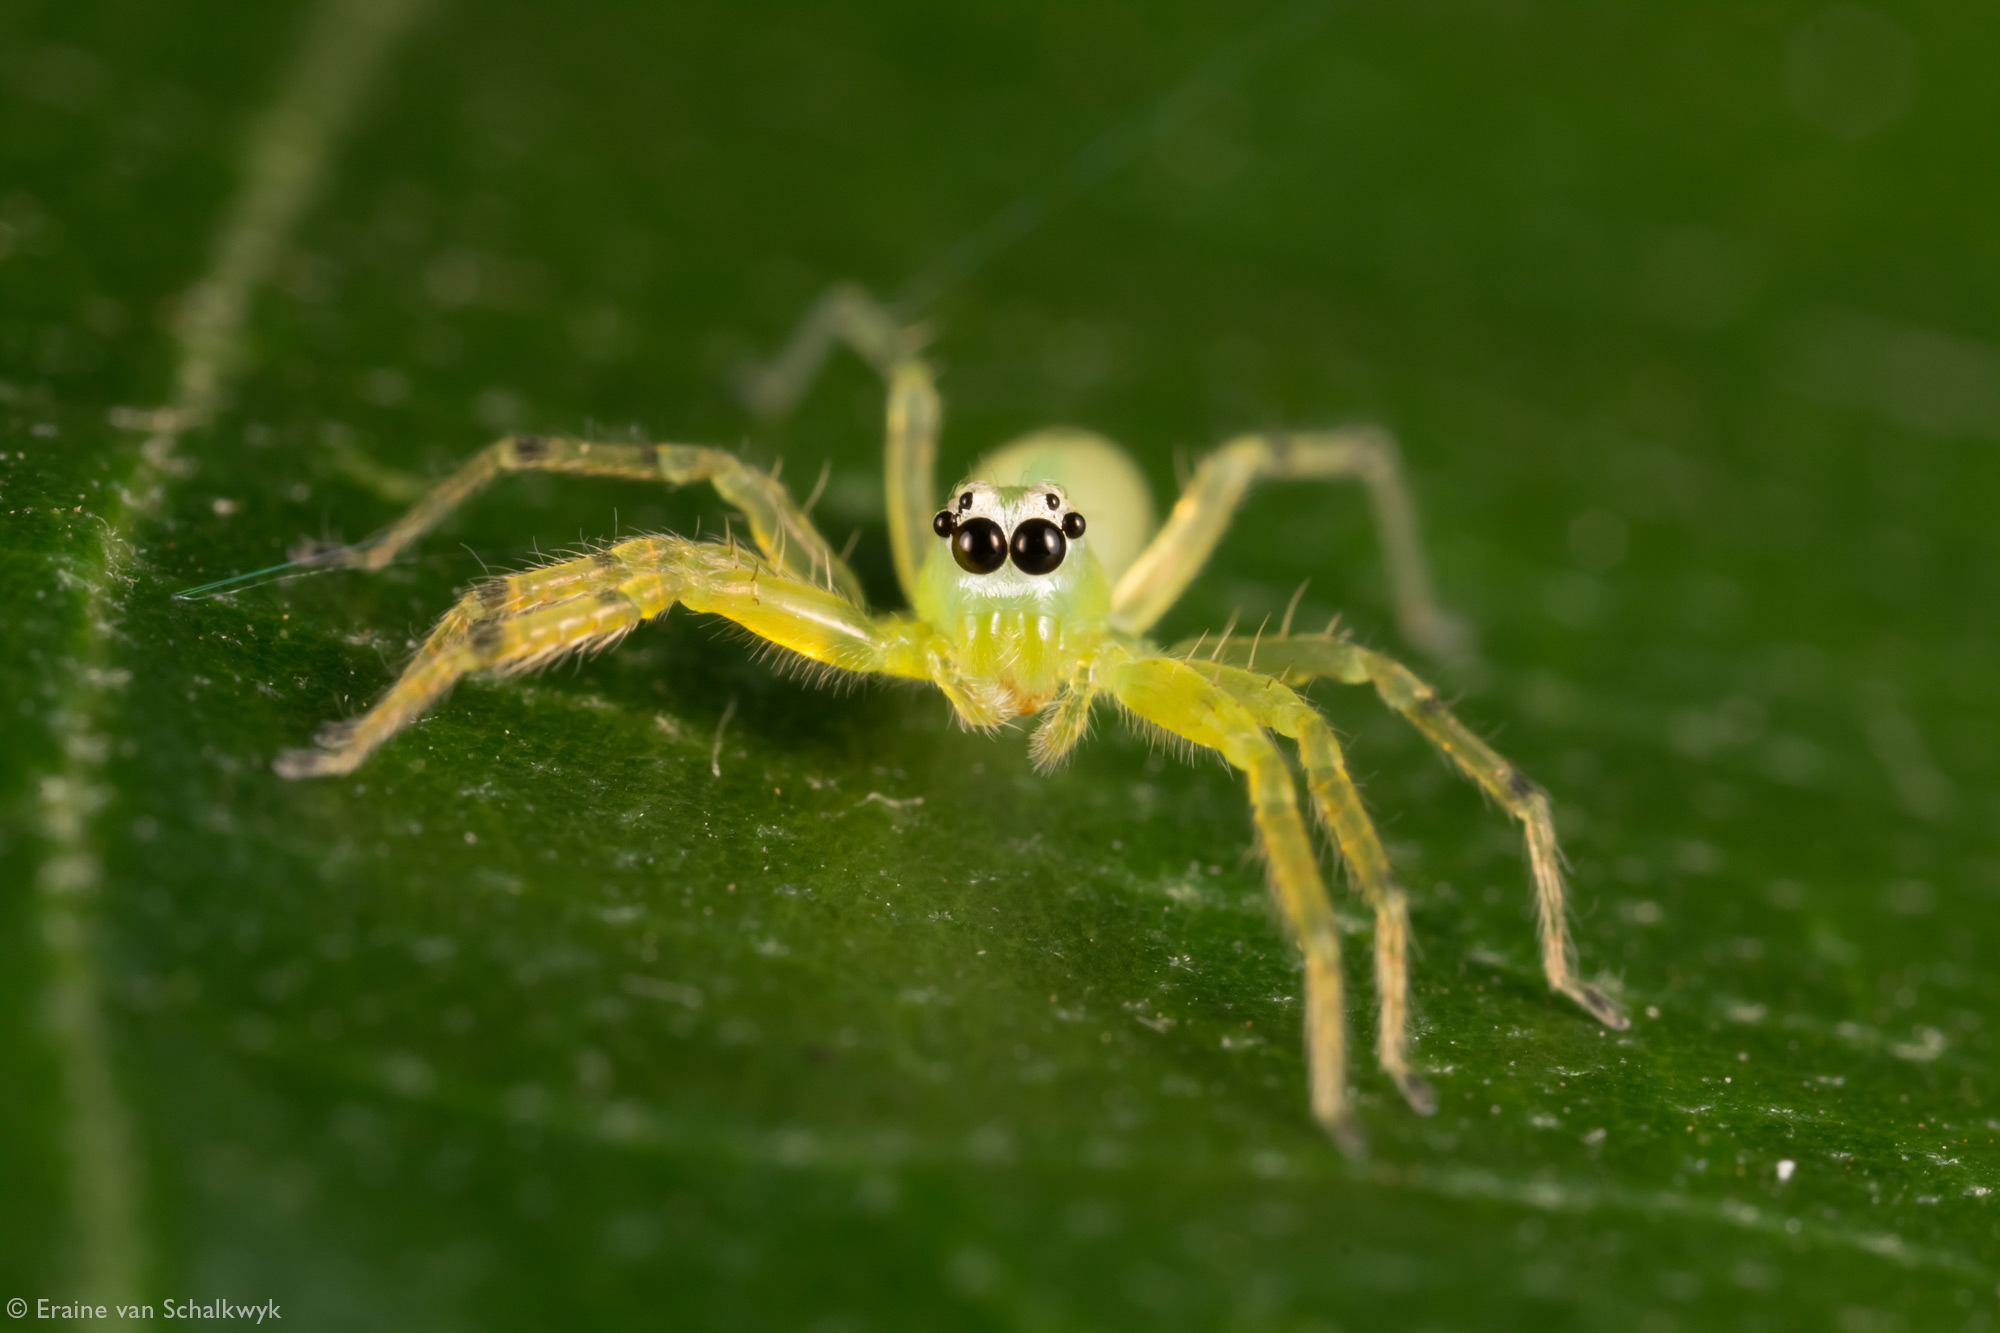 Green jumping spider, spider, arachnid, macro photography